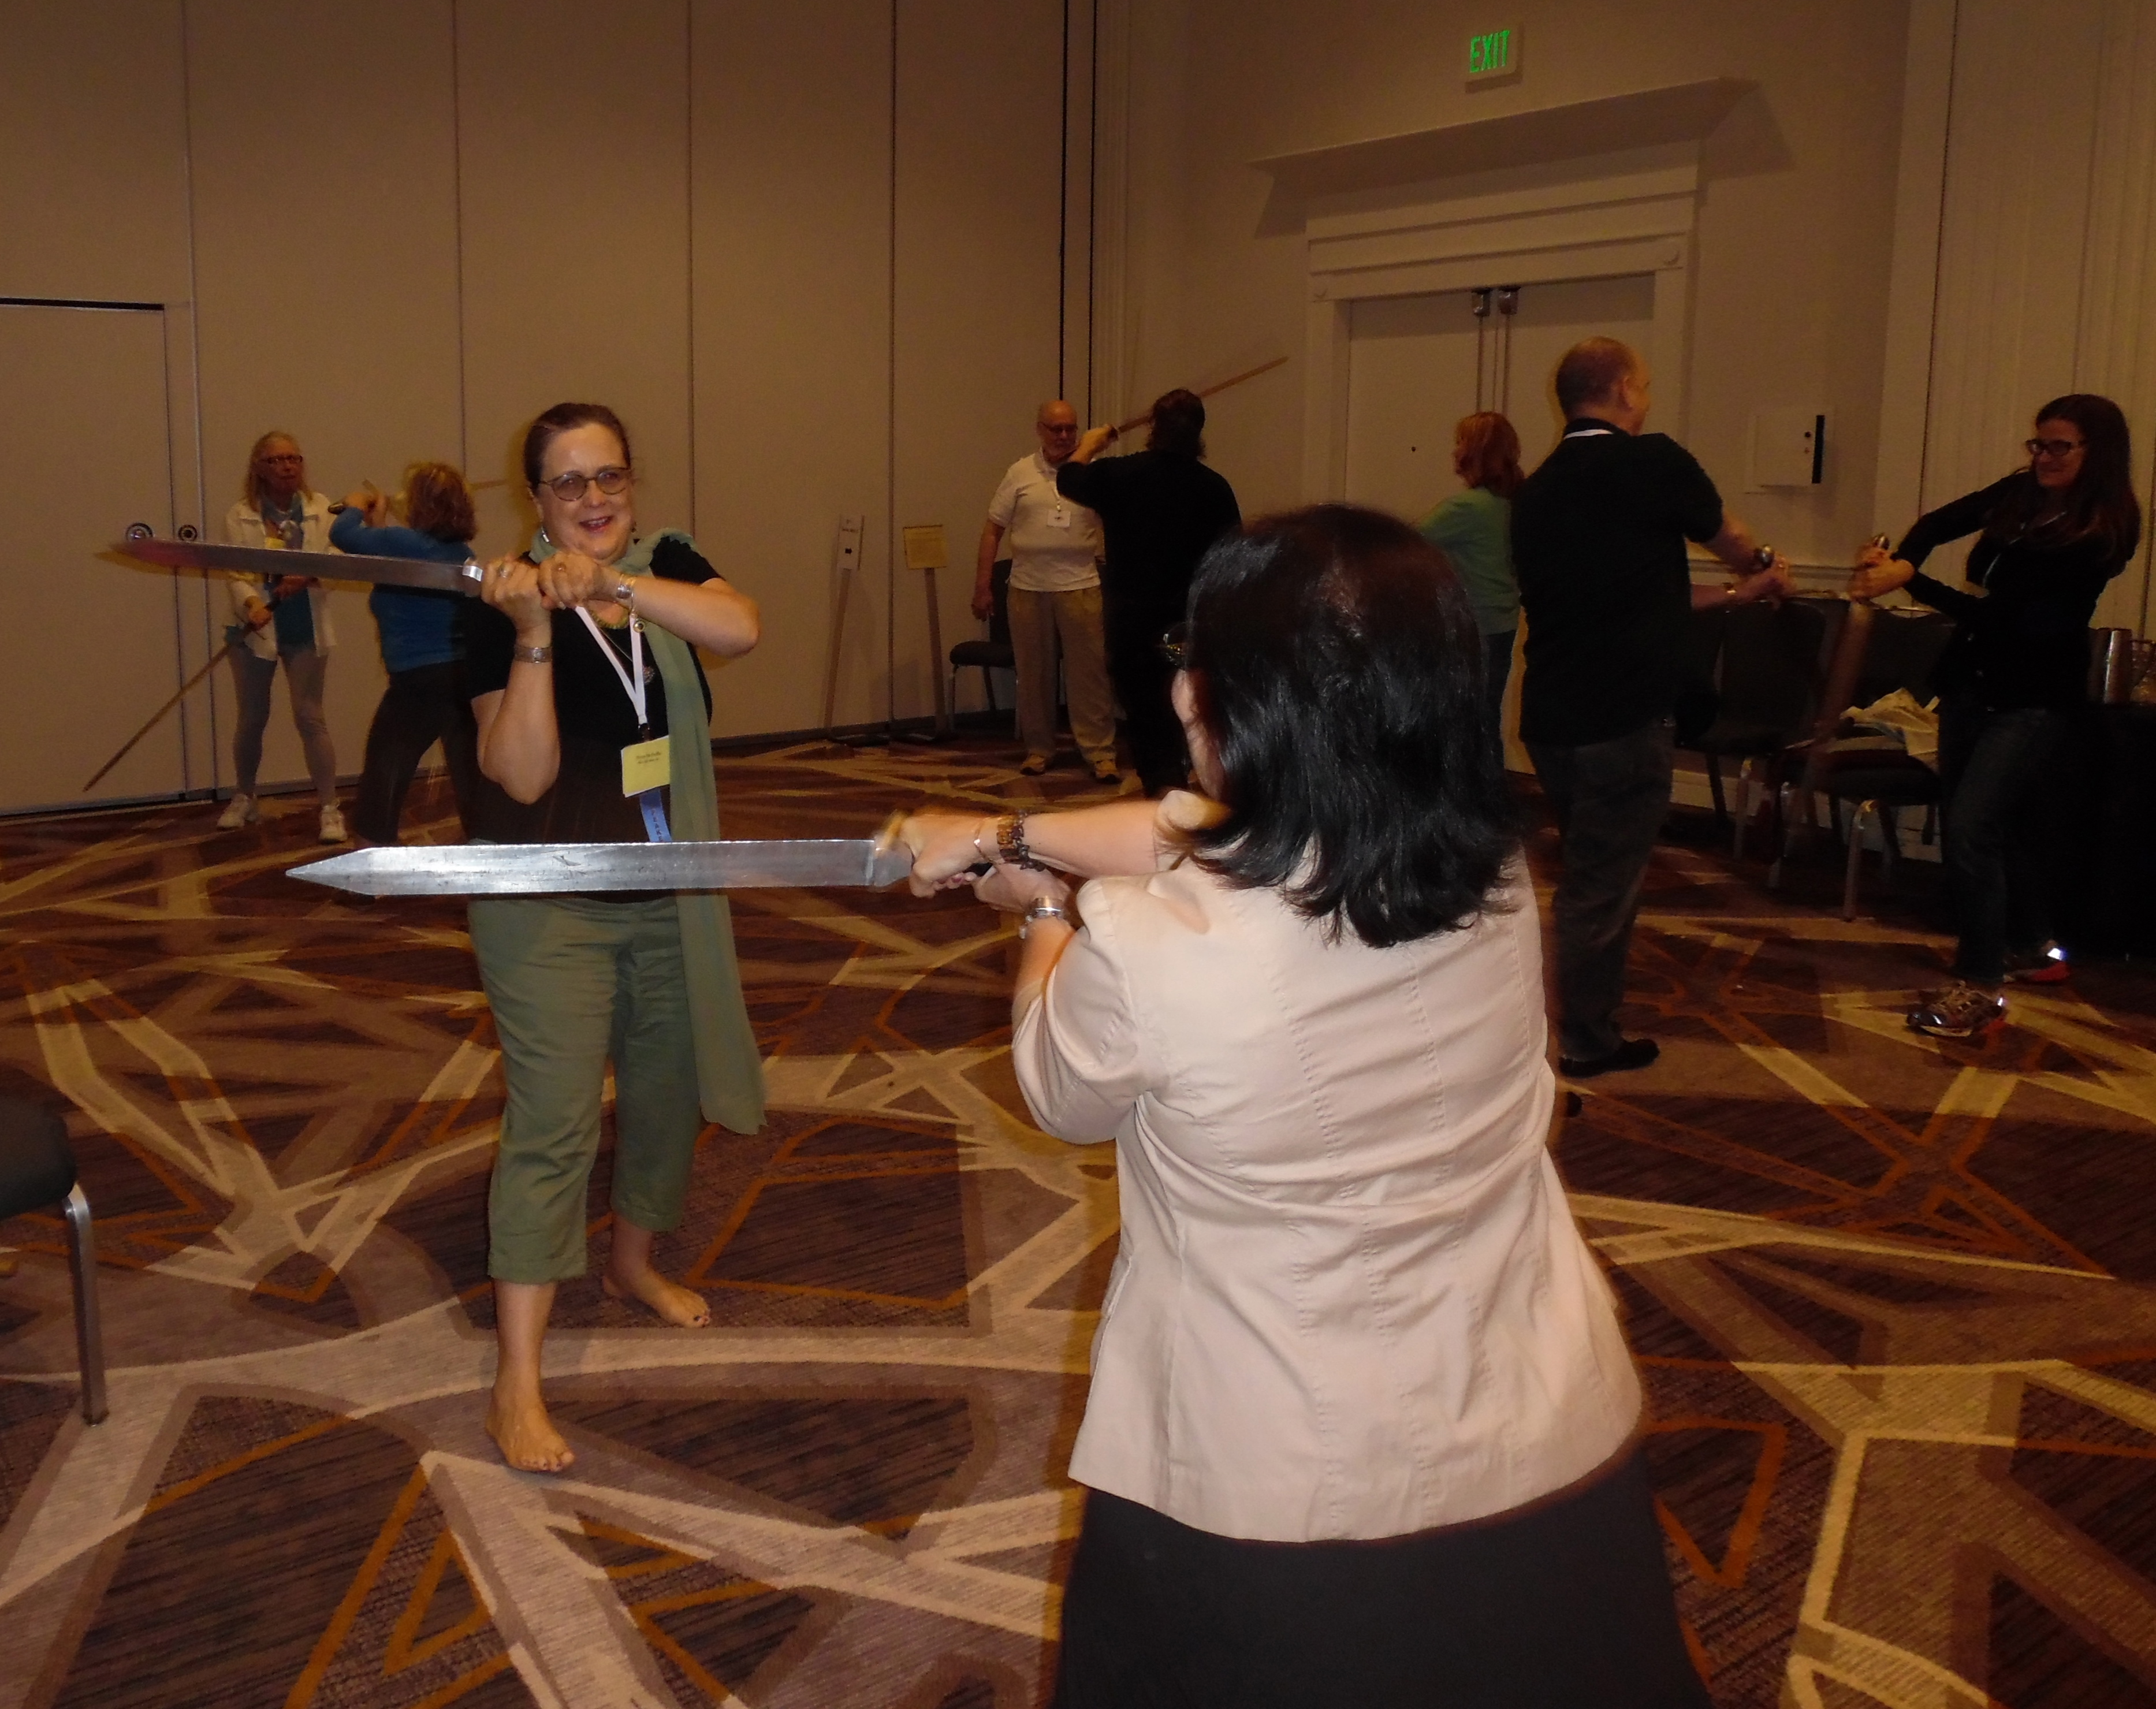 Practicing with a broadsword at David Blixt's swordplay workshop.